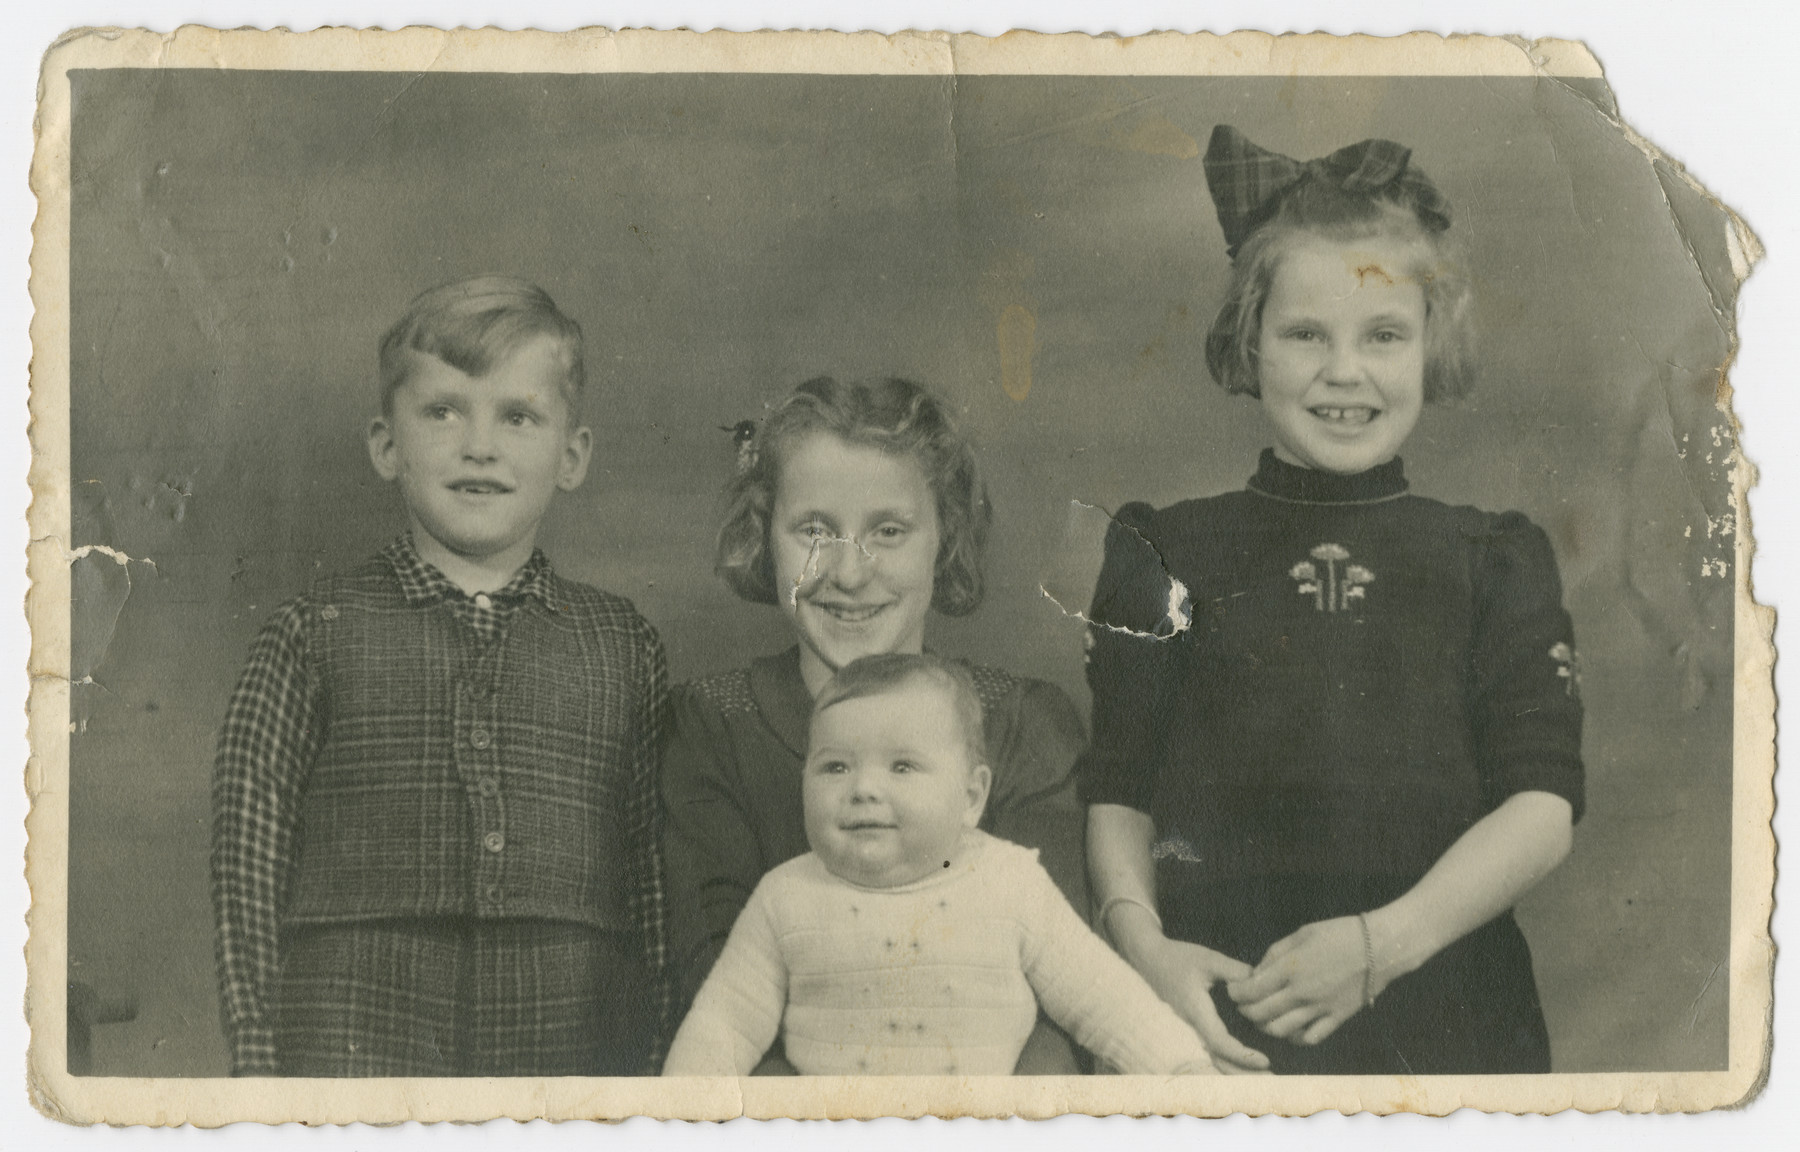 Aaron Jedwab, a Jewish infant in hiding as Jan Willem Herfstein, poses with his foster siblings Dick, Janni and Ina Wikkerink.